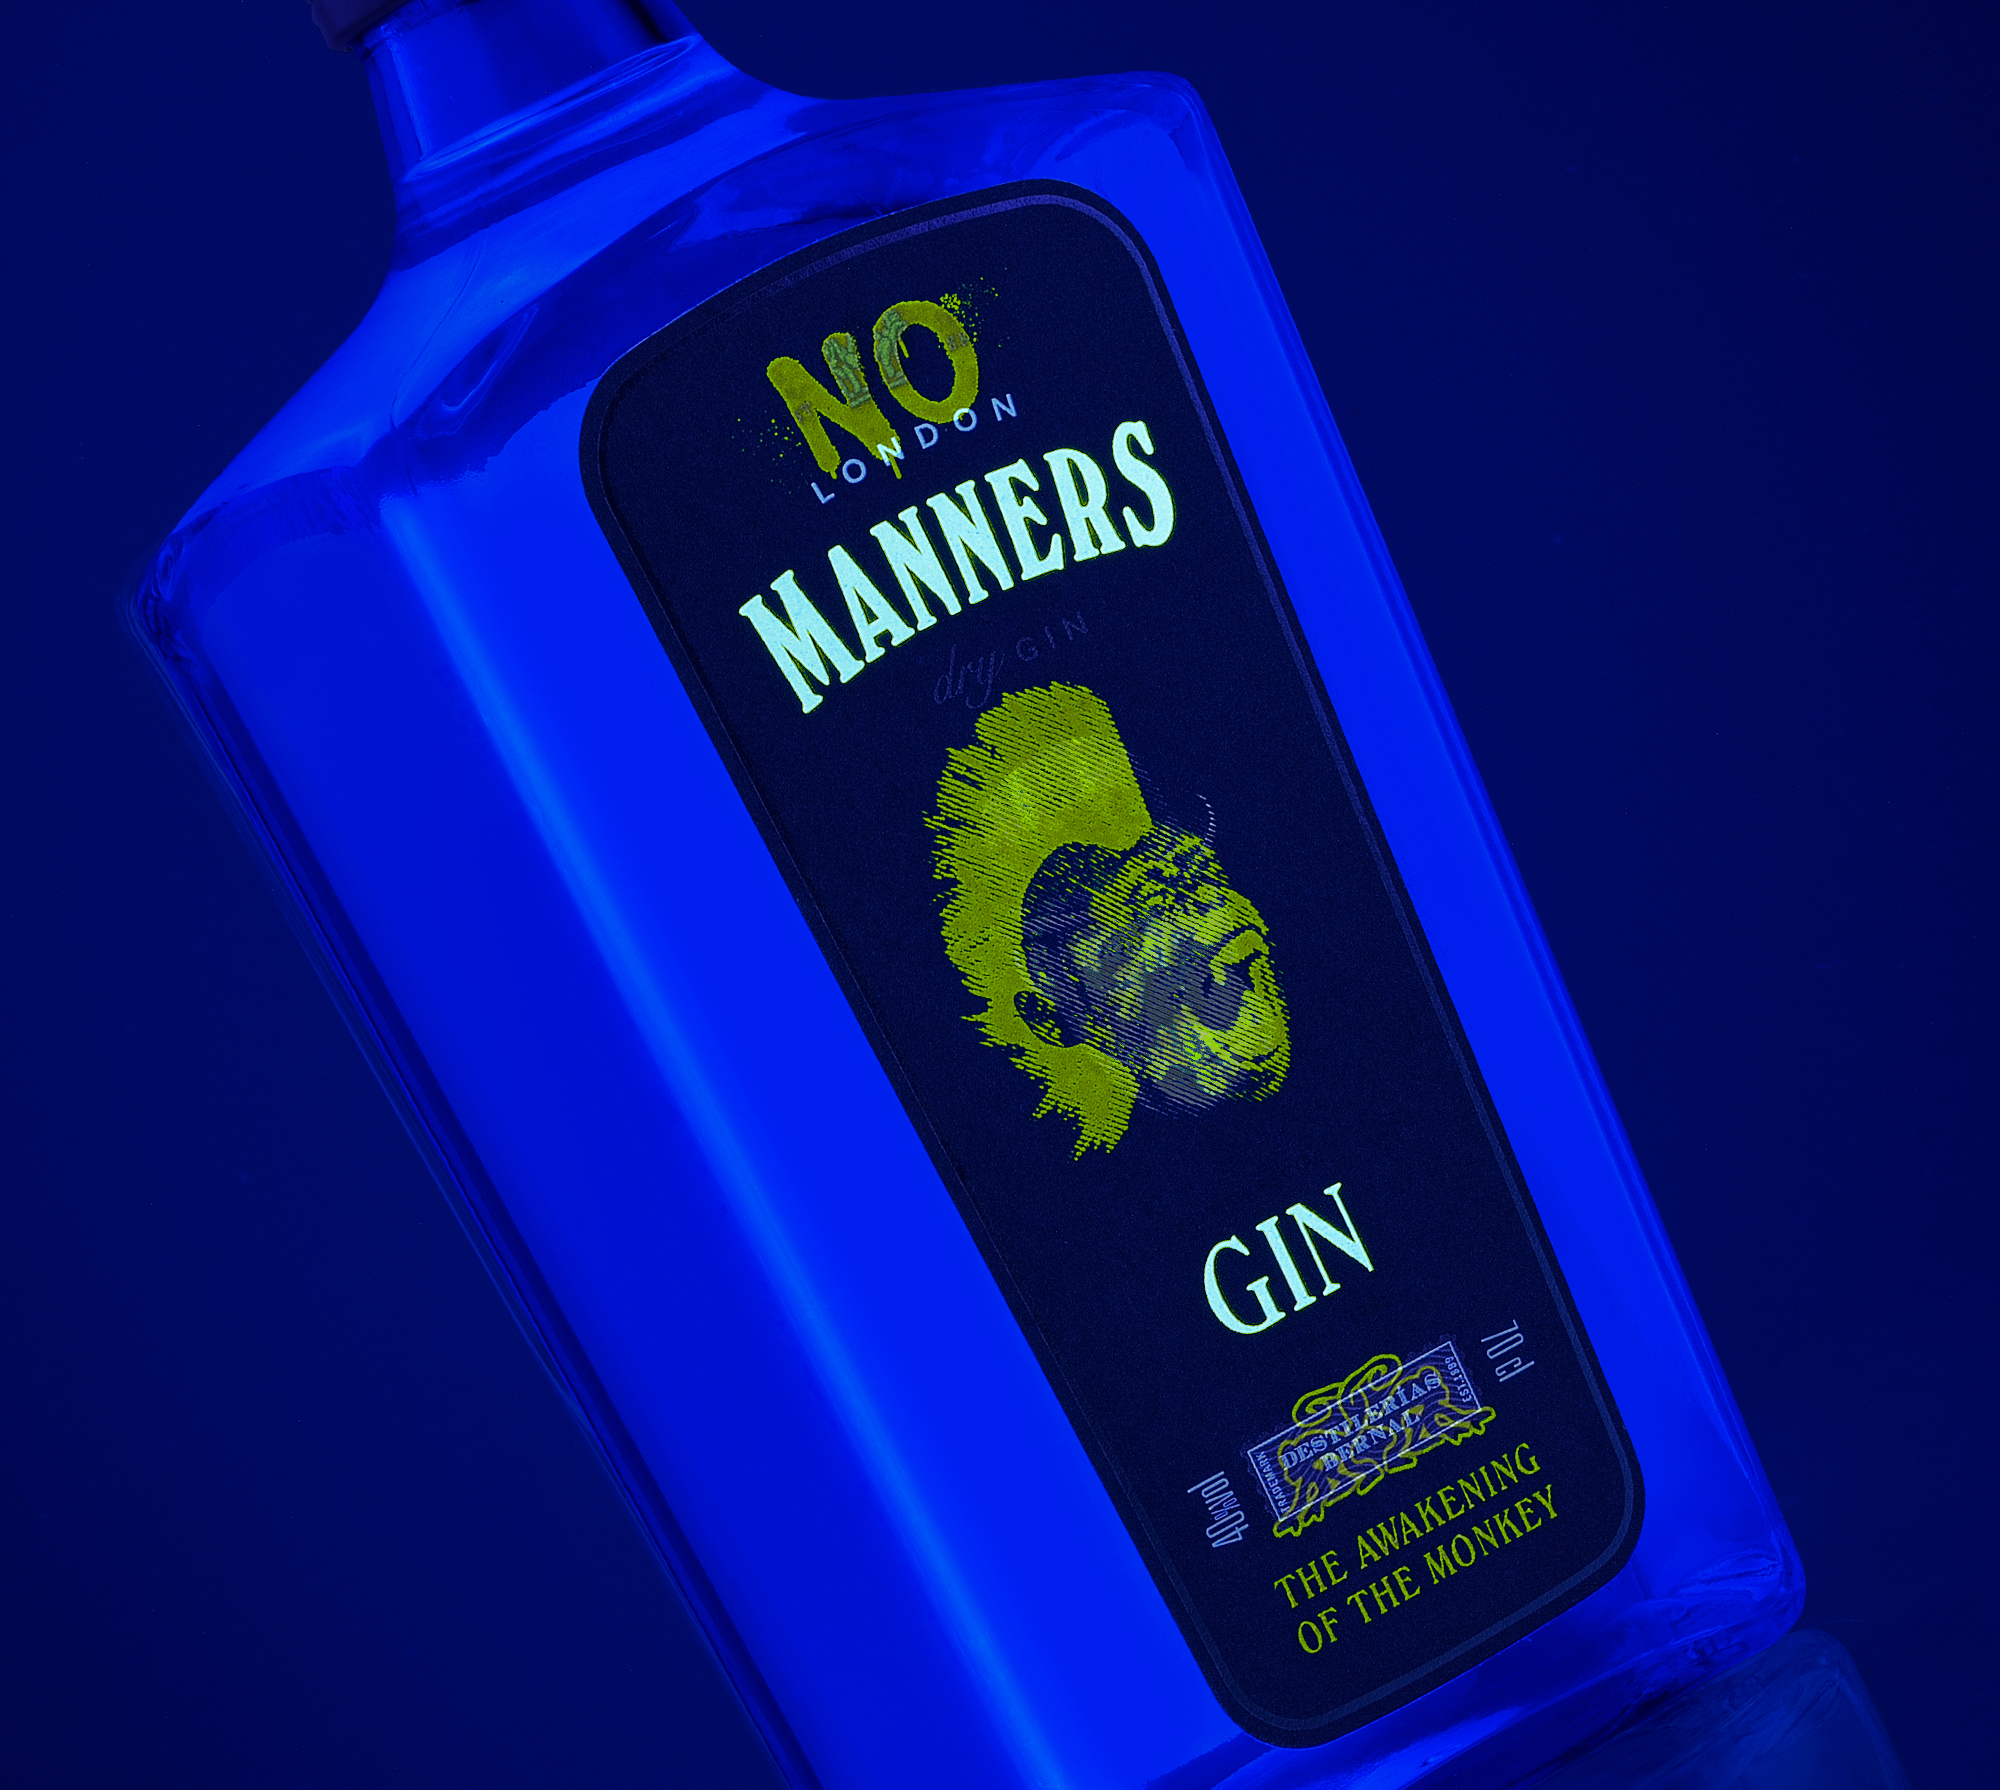 Manners gin